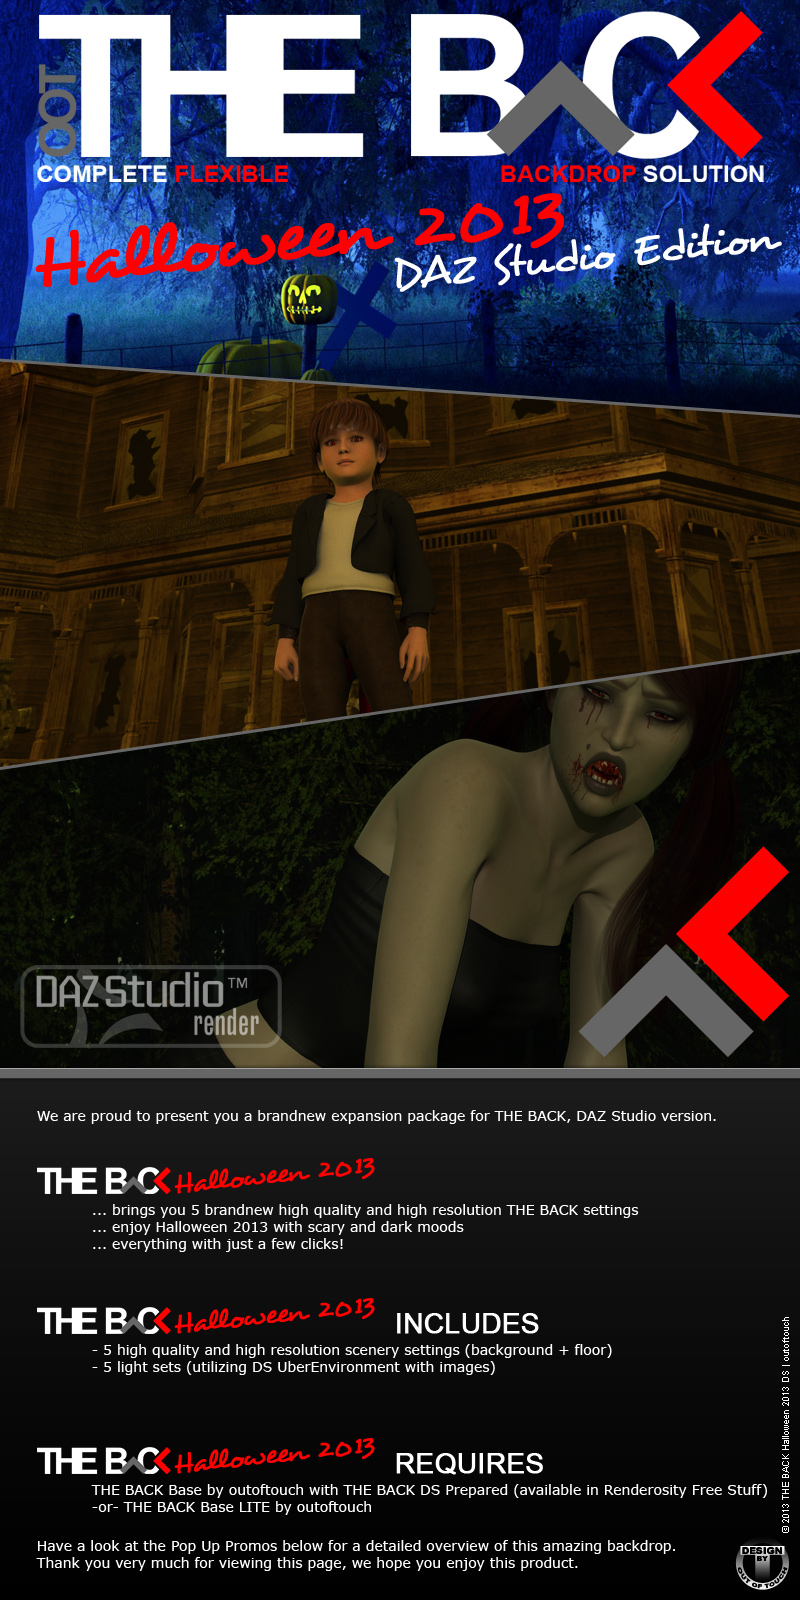 THE BACK Halloween 2013 - DAZ STUDIO